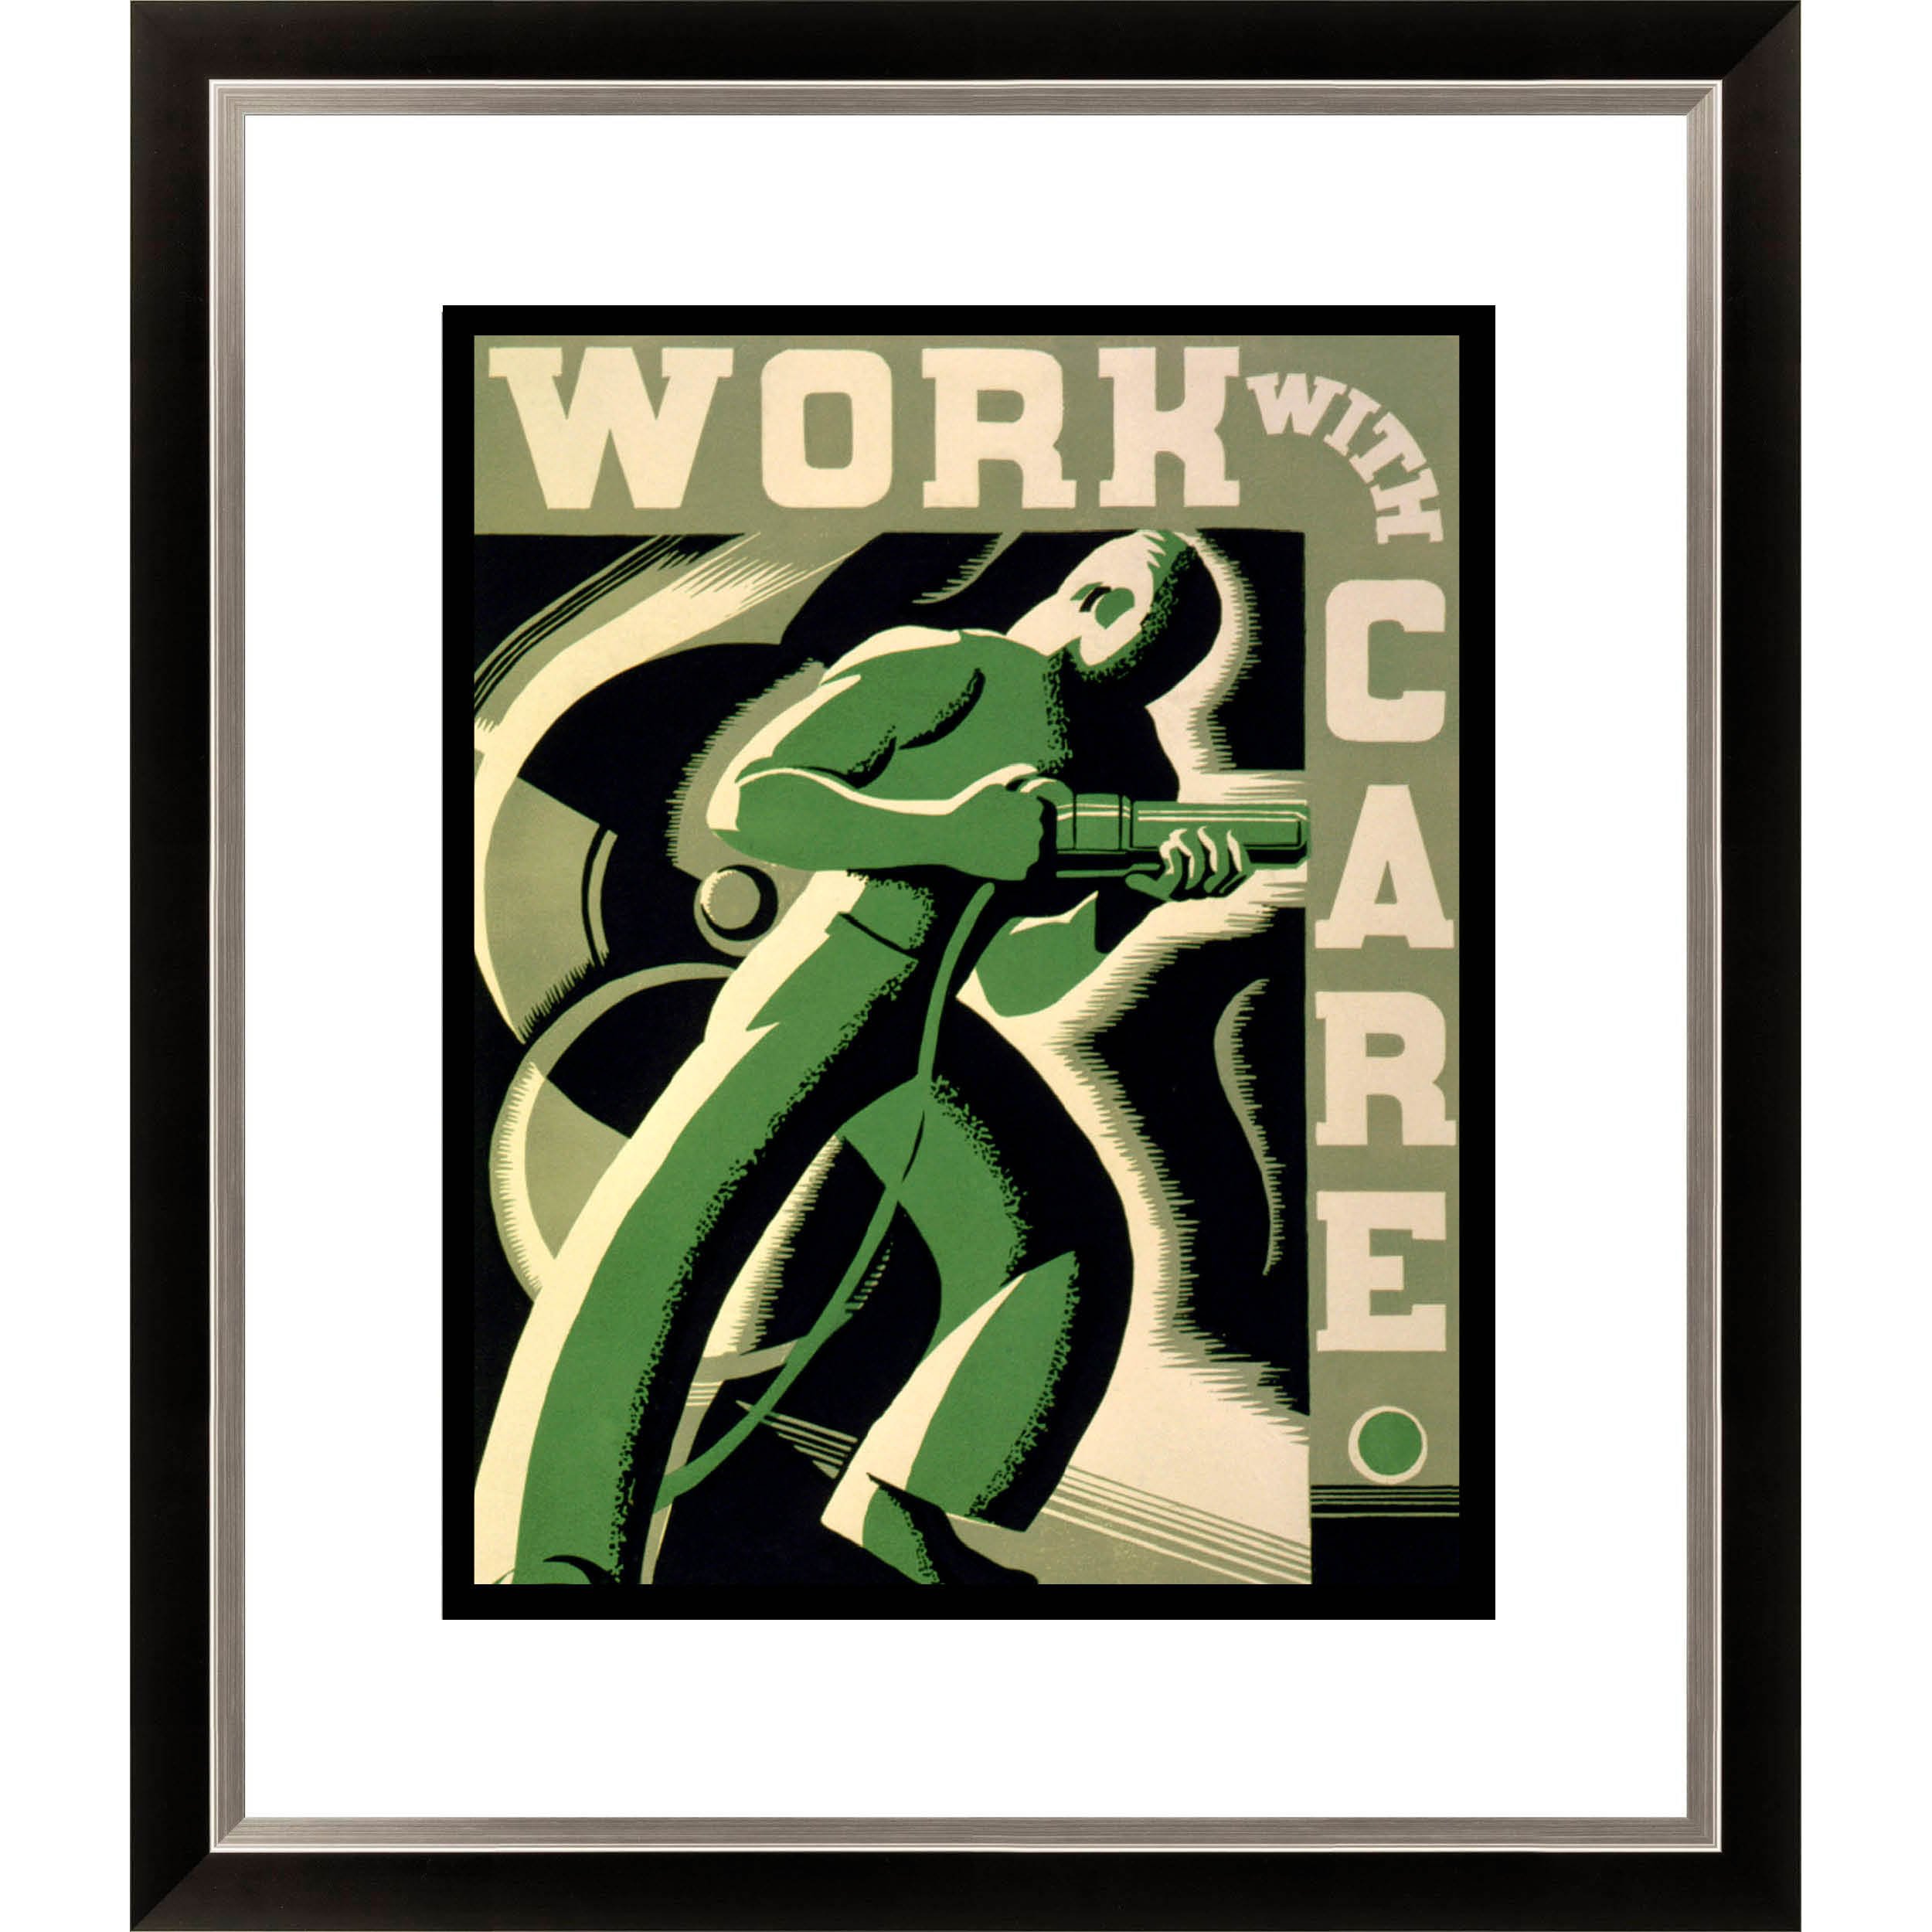 Gallery Direct 'Work with Care' Framed Limited Edition Americana Giclee